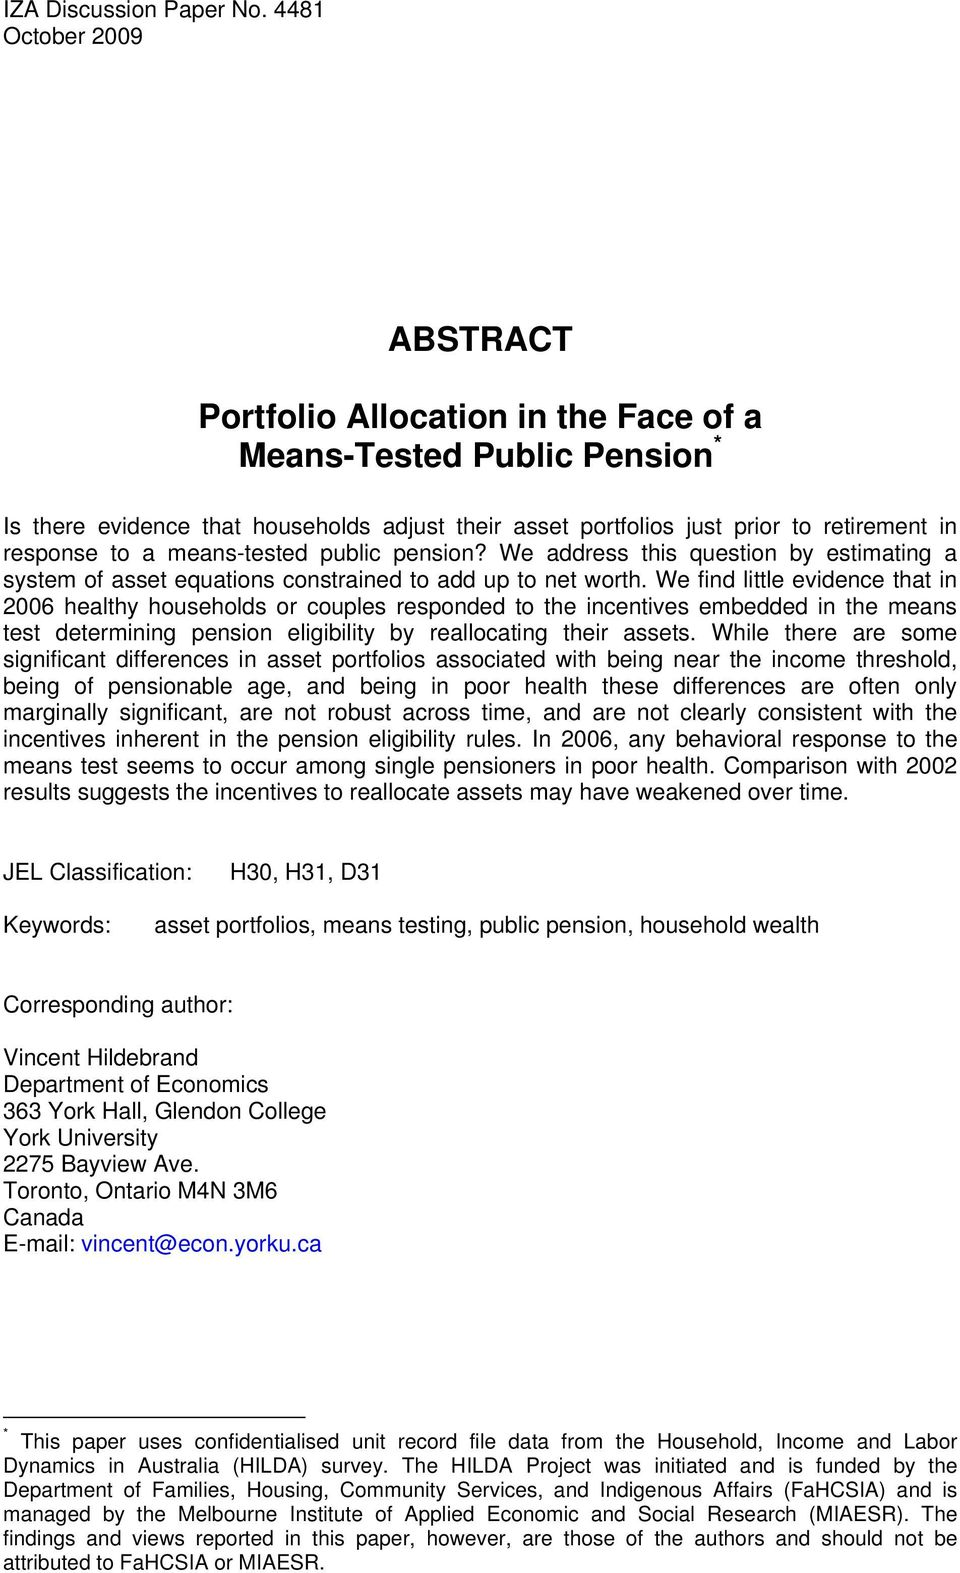 a means-tested public pension? We address this question by estimating a system of asset equations constrained to add up to net worth.